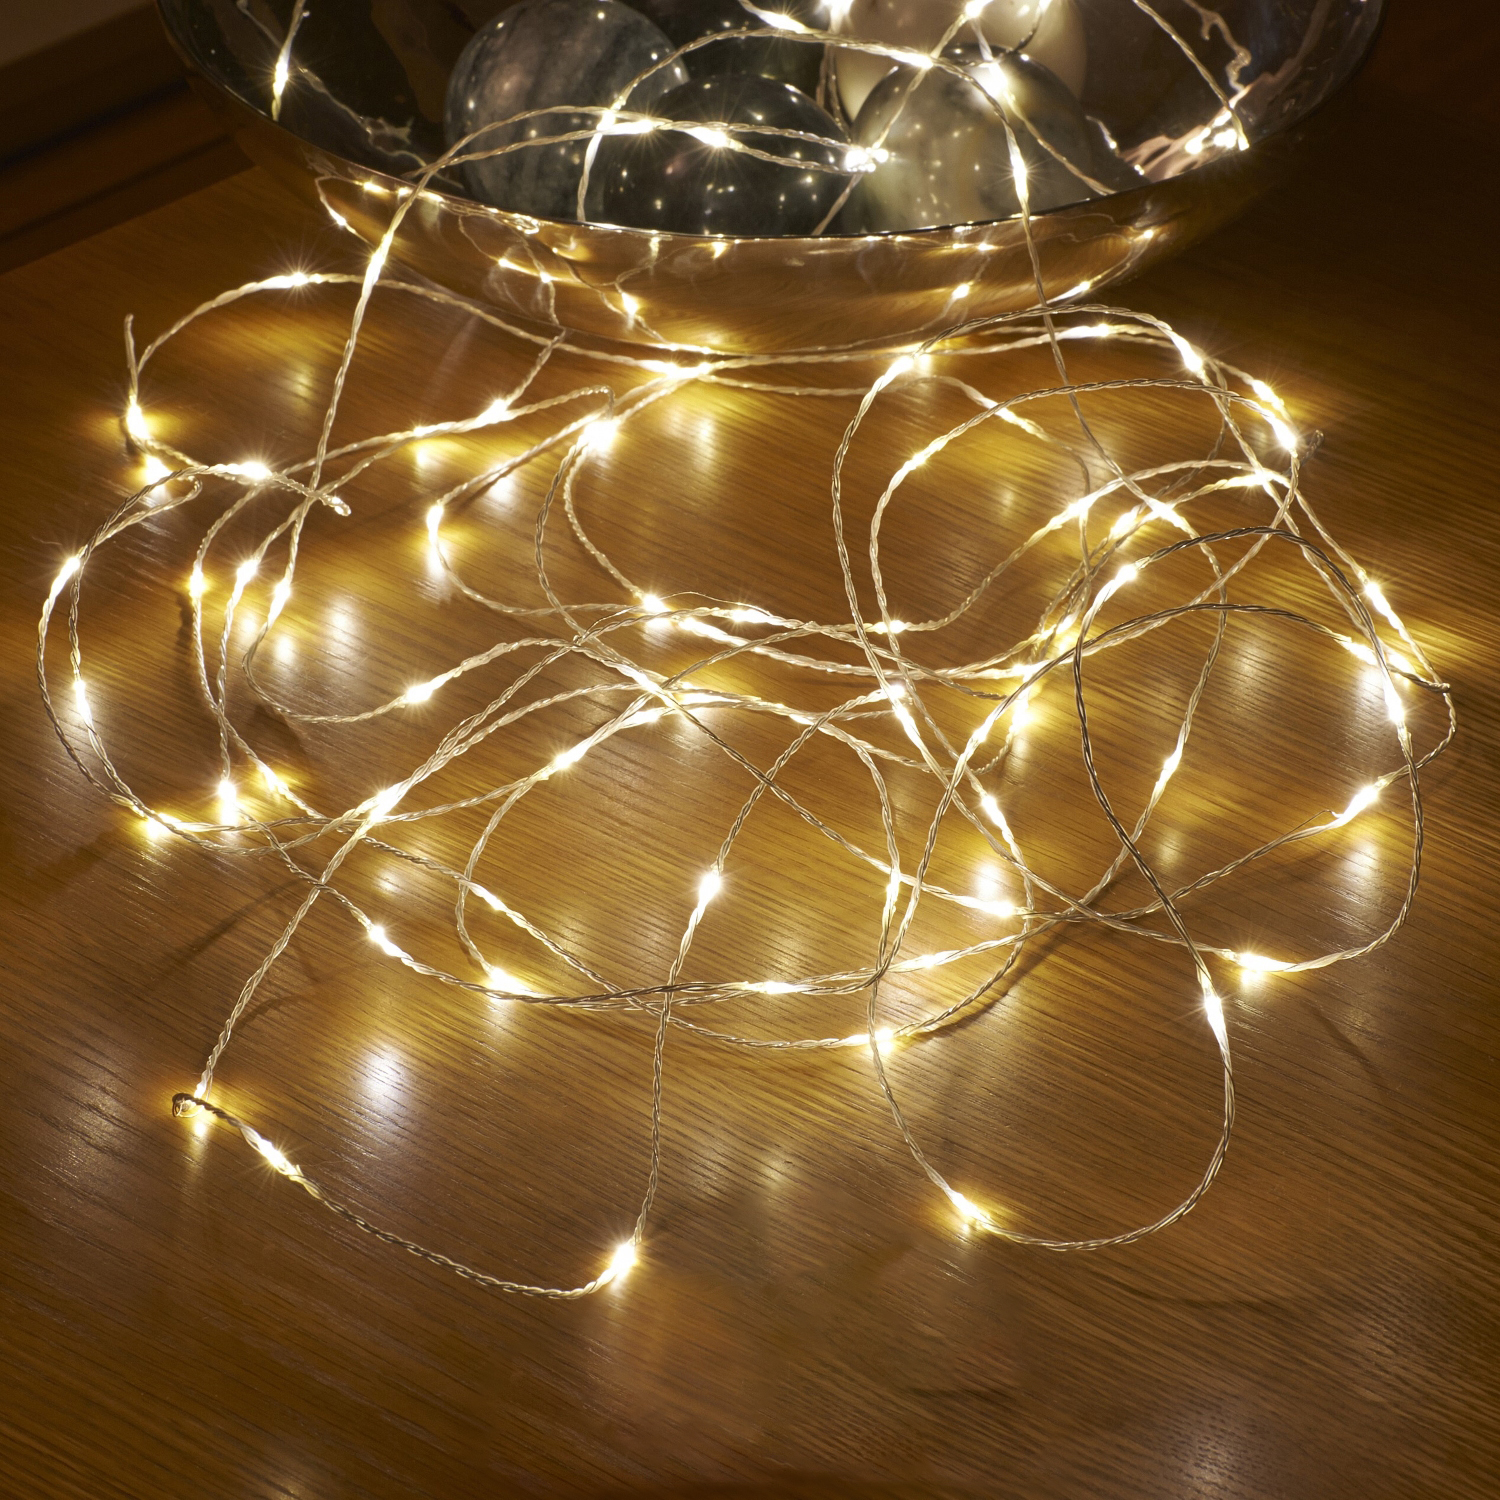 How To Make String Lights Battery Powered : Micro LED String Lights - Battery Operated - Remote Controlled - Outdoor - 5M - Auraglow LED ...